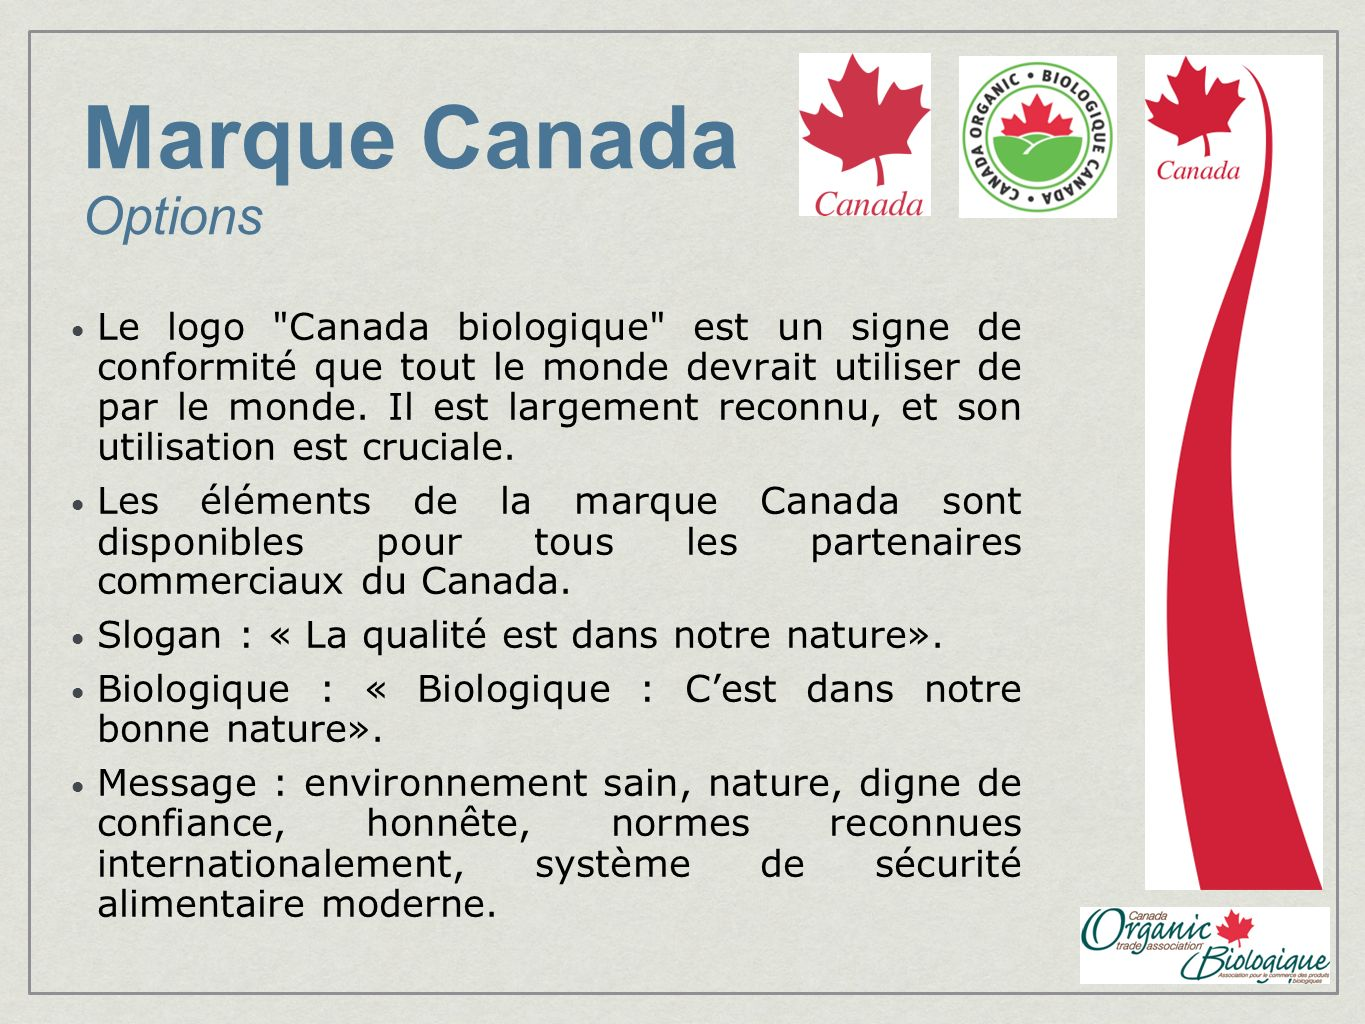 Marque Canada Options